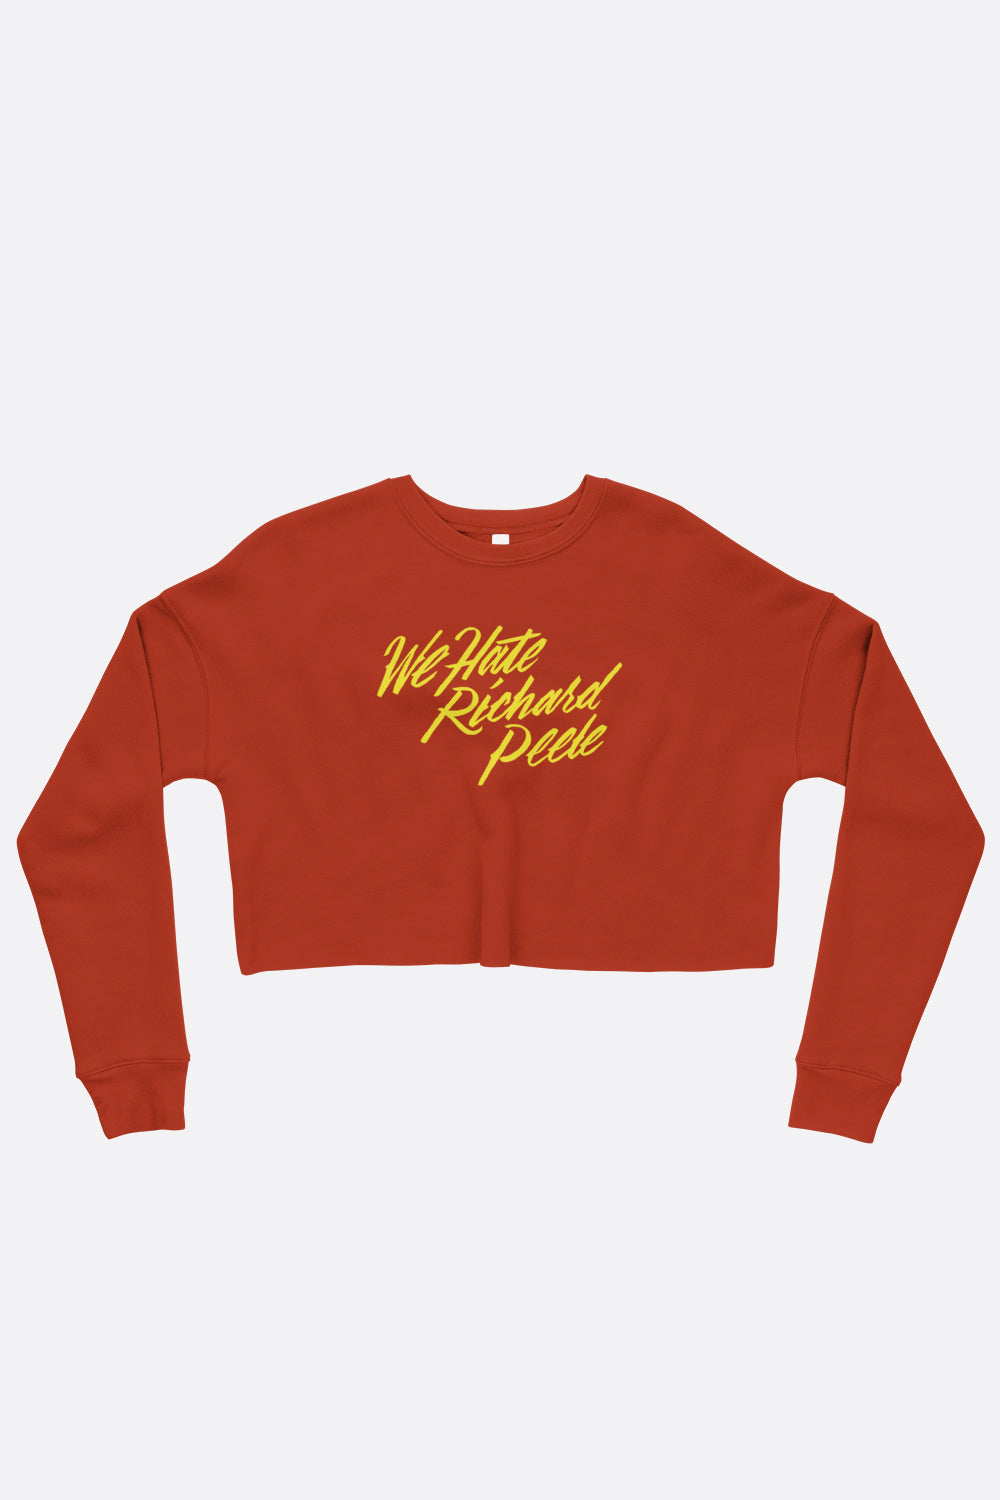 We Hate Richard Peele Crop Sweatshirt | Mackenzi Lee